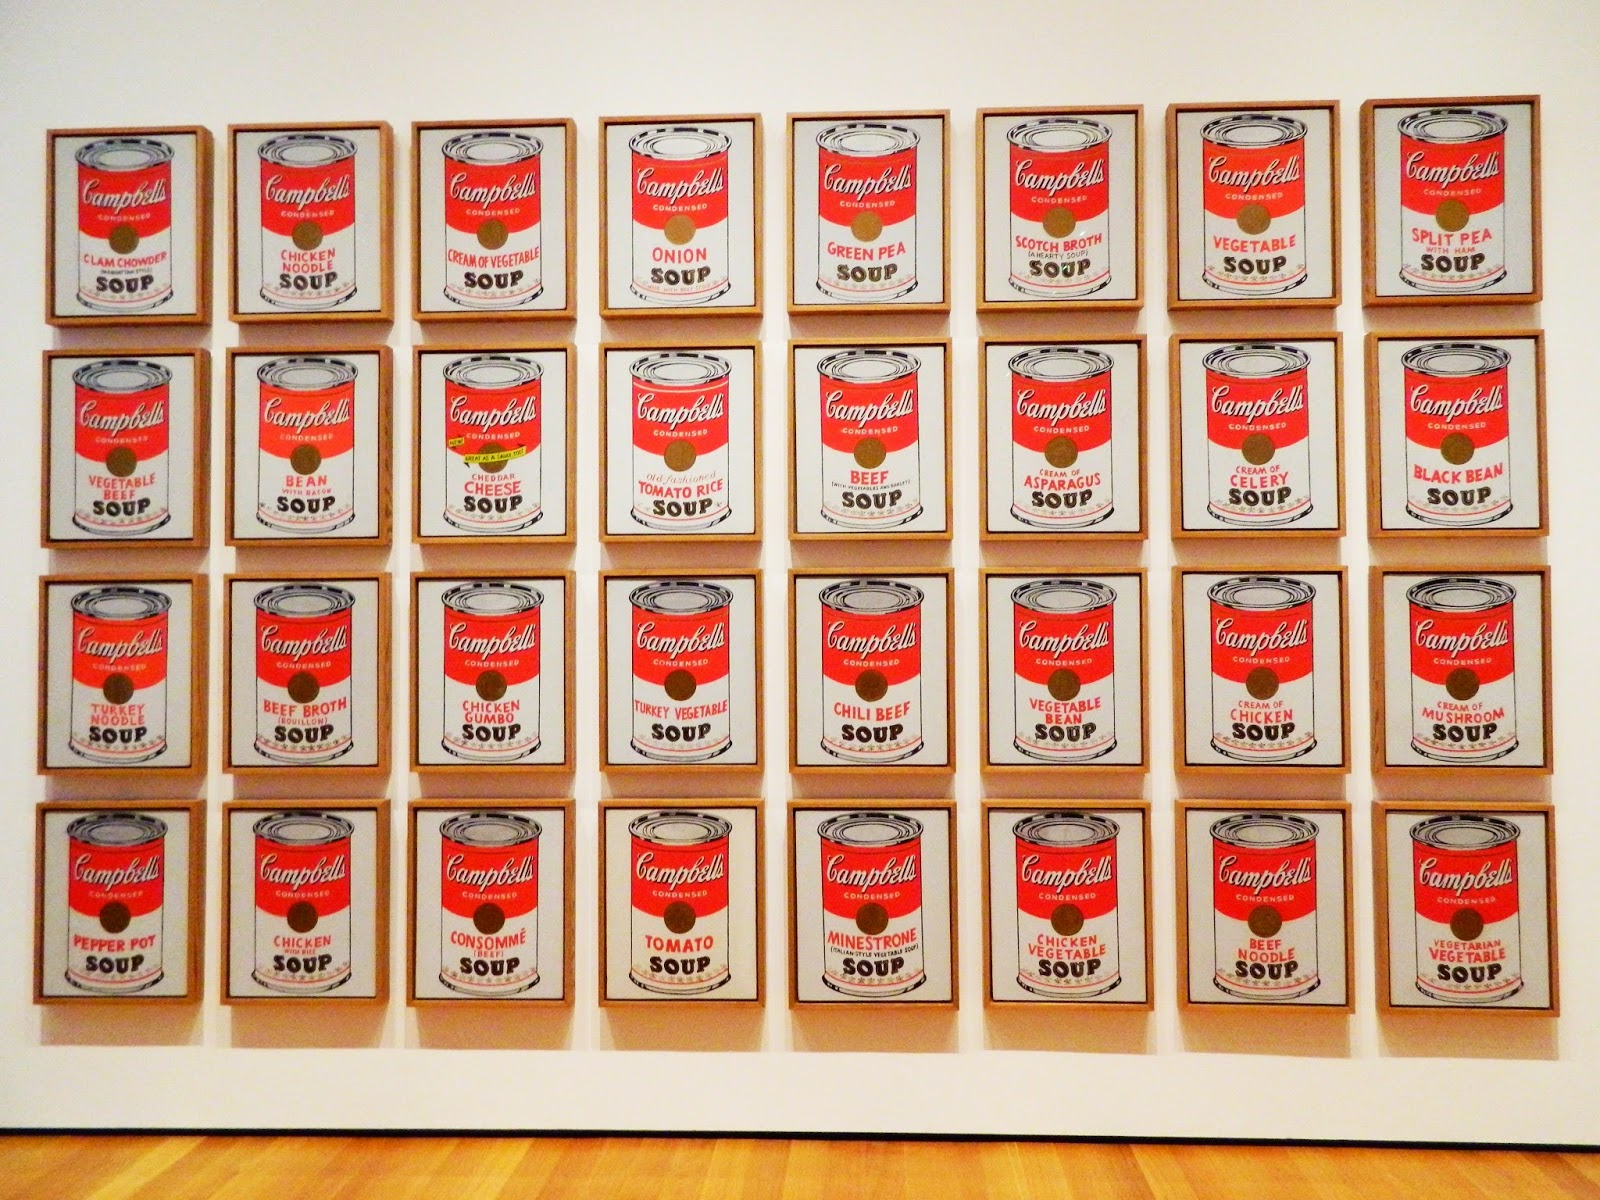 Andy Warhol, Campbell's Soup Cans moma prints 32